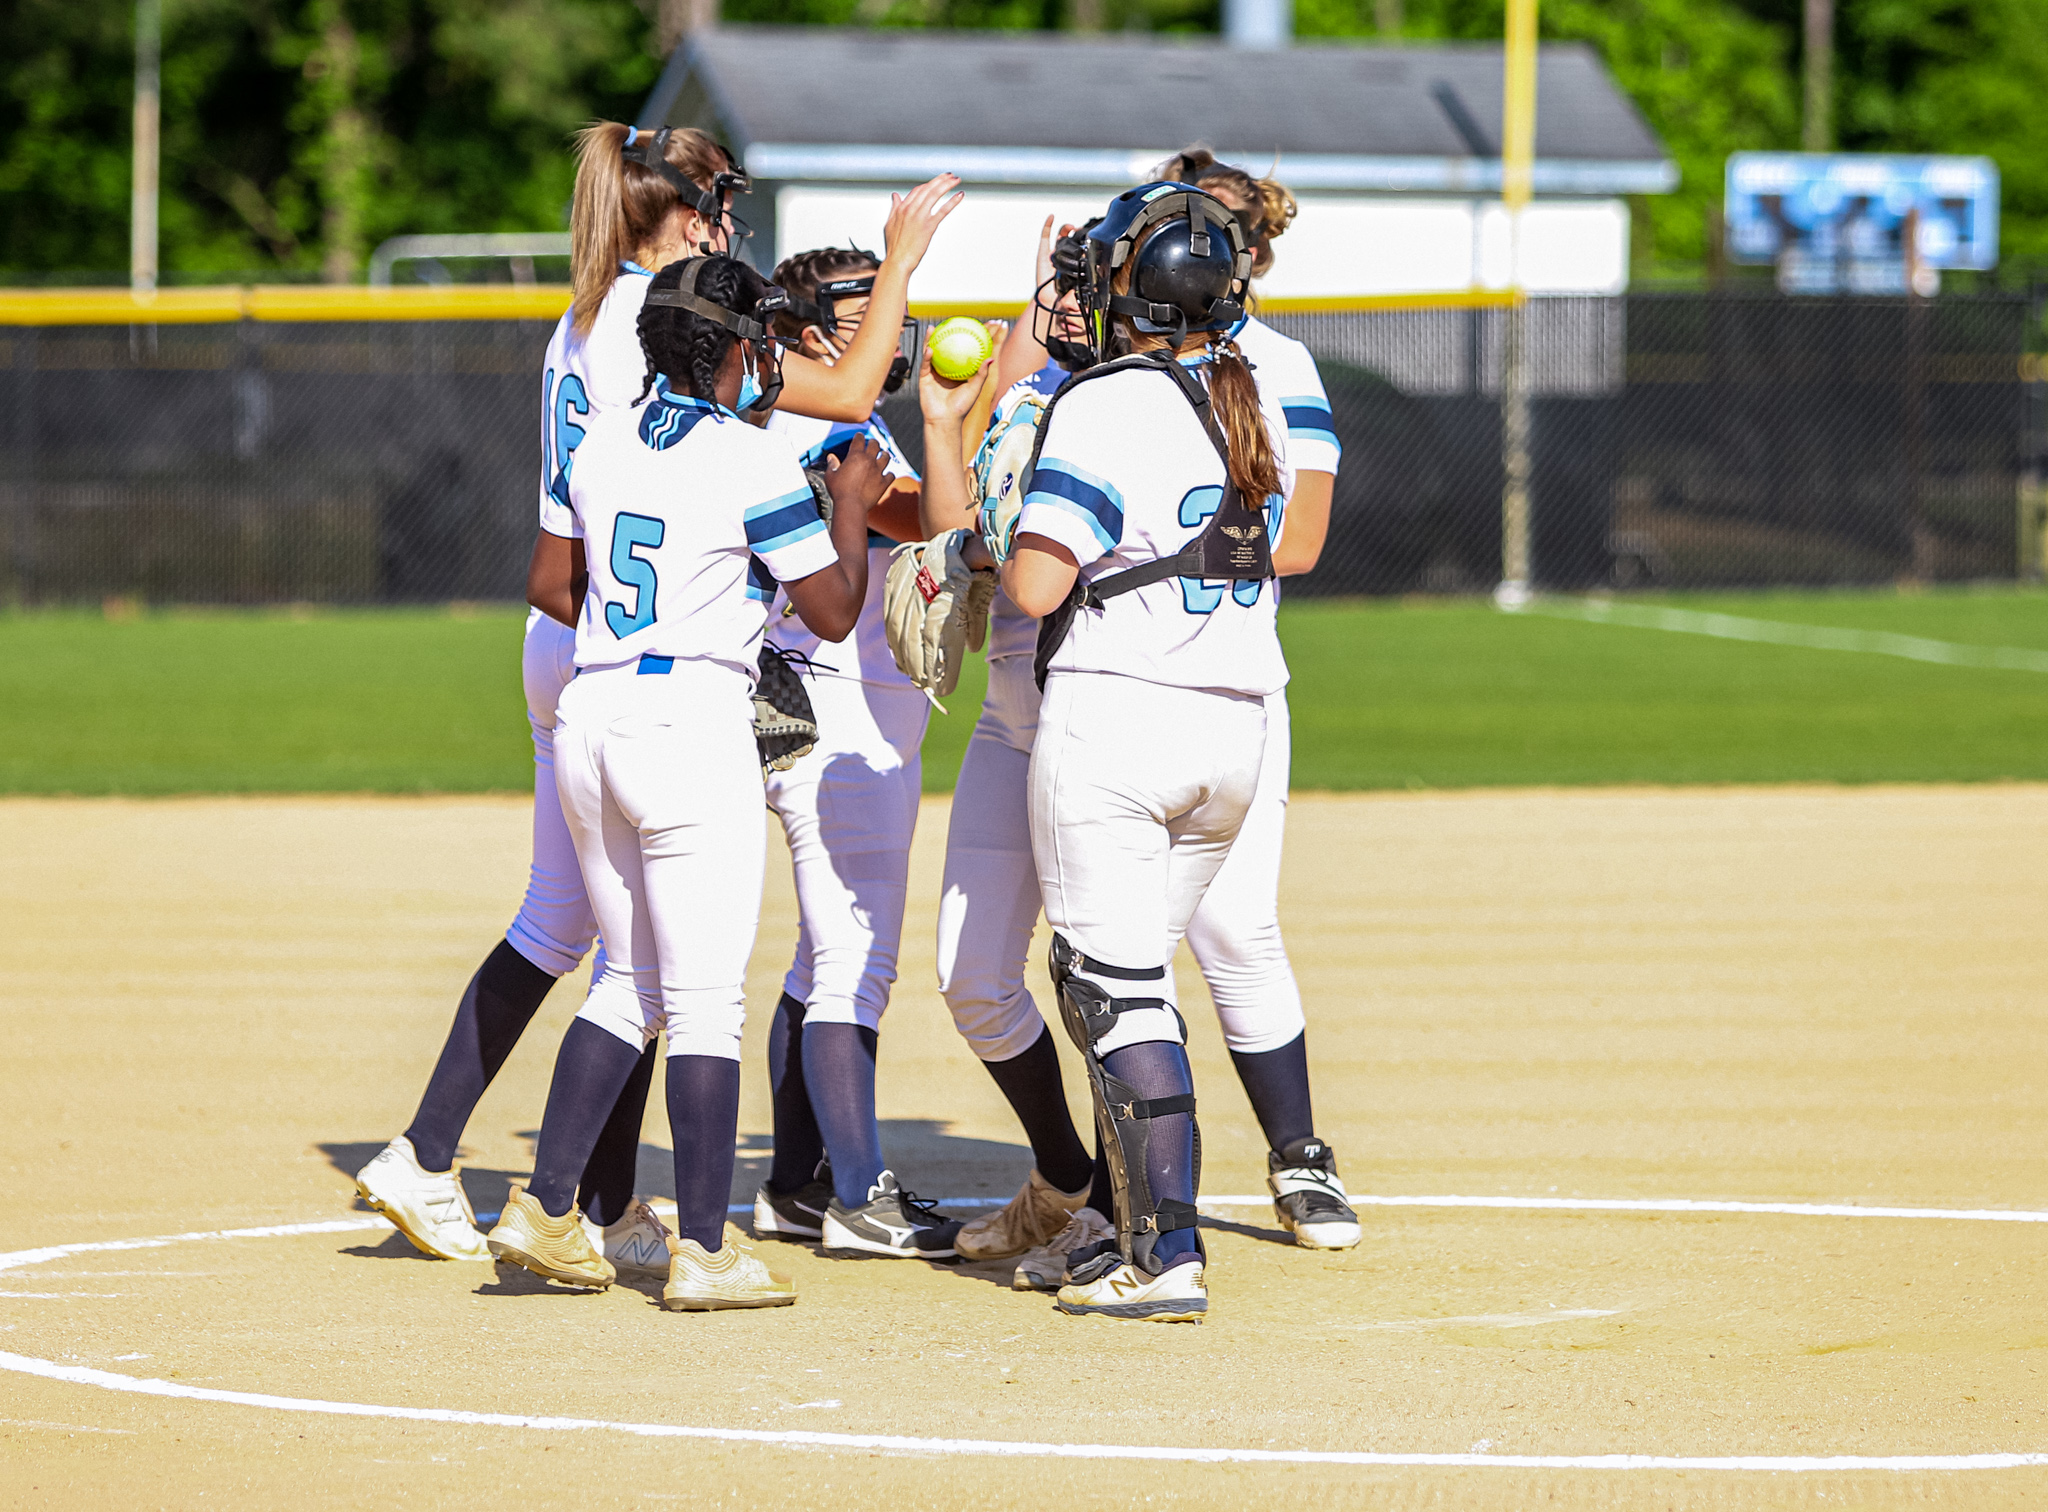 Softball: C.B. Aycock Comes Back To Beat South Central (PHOTO GALLERY)